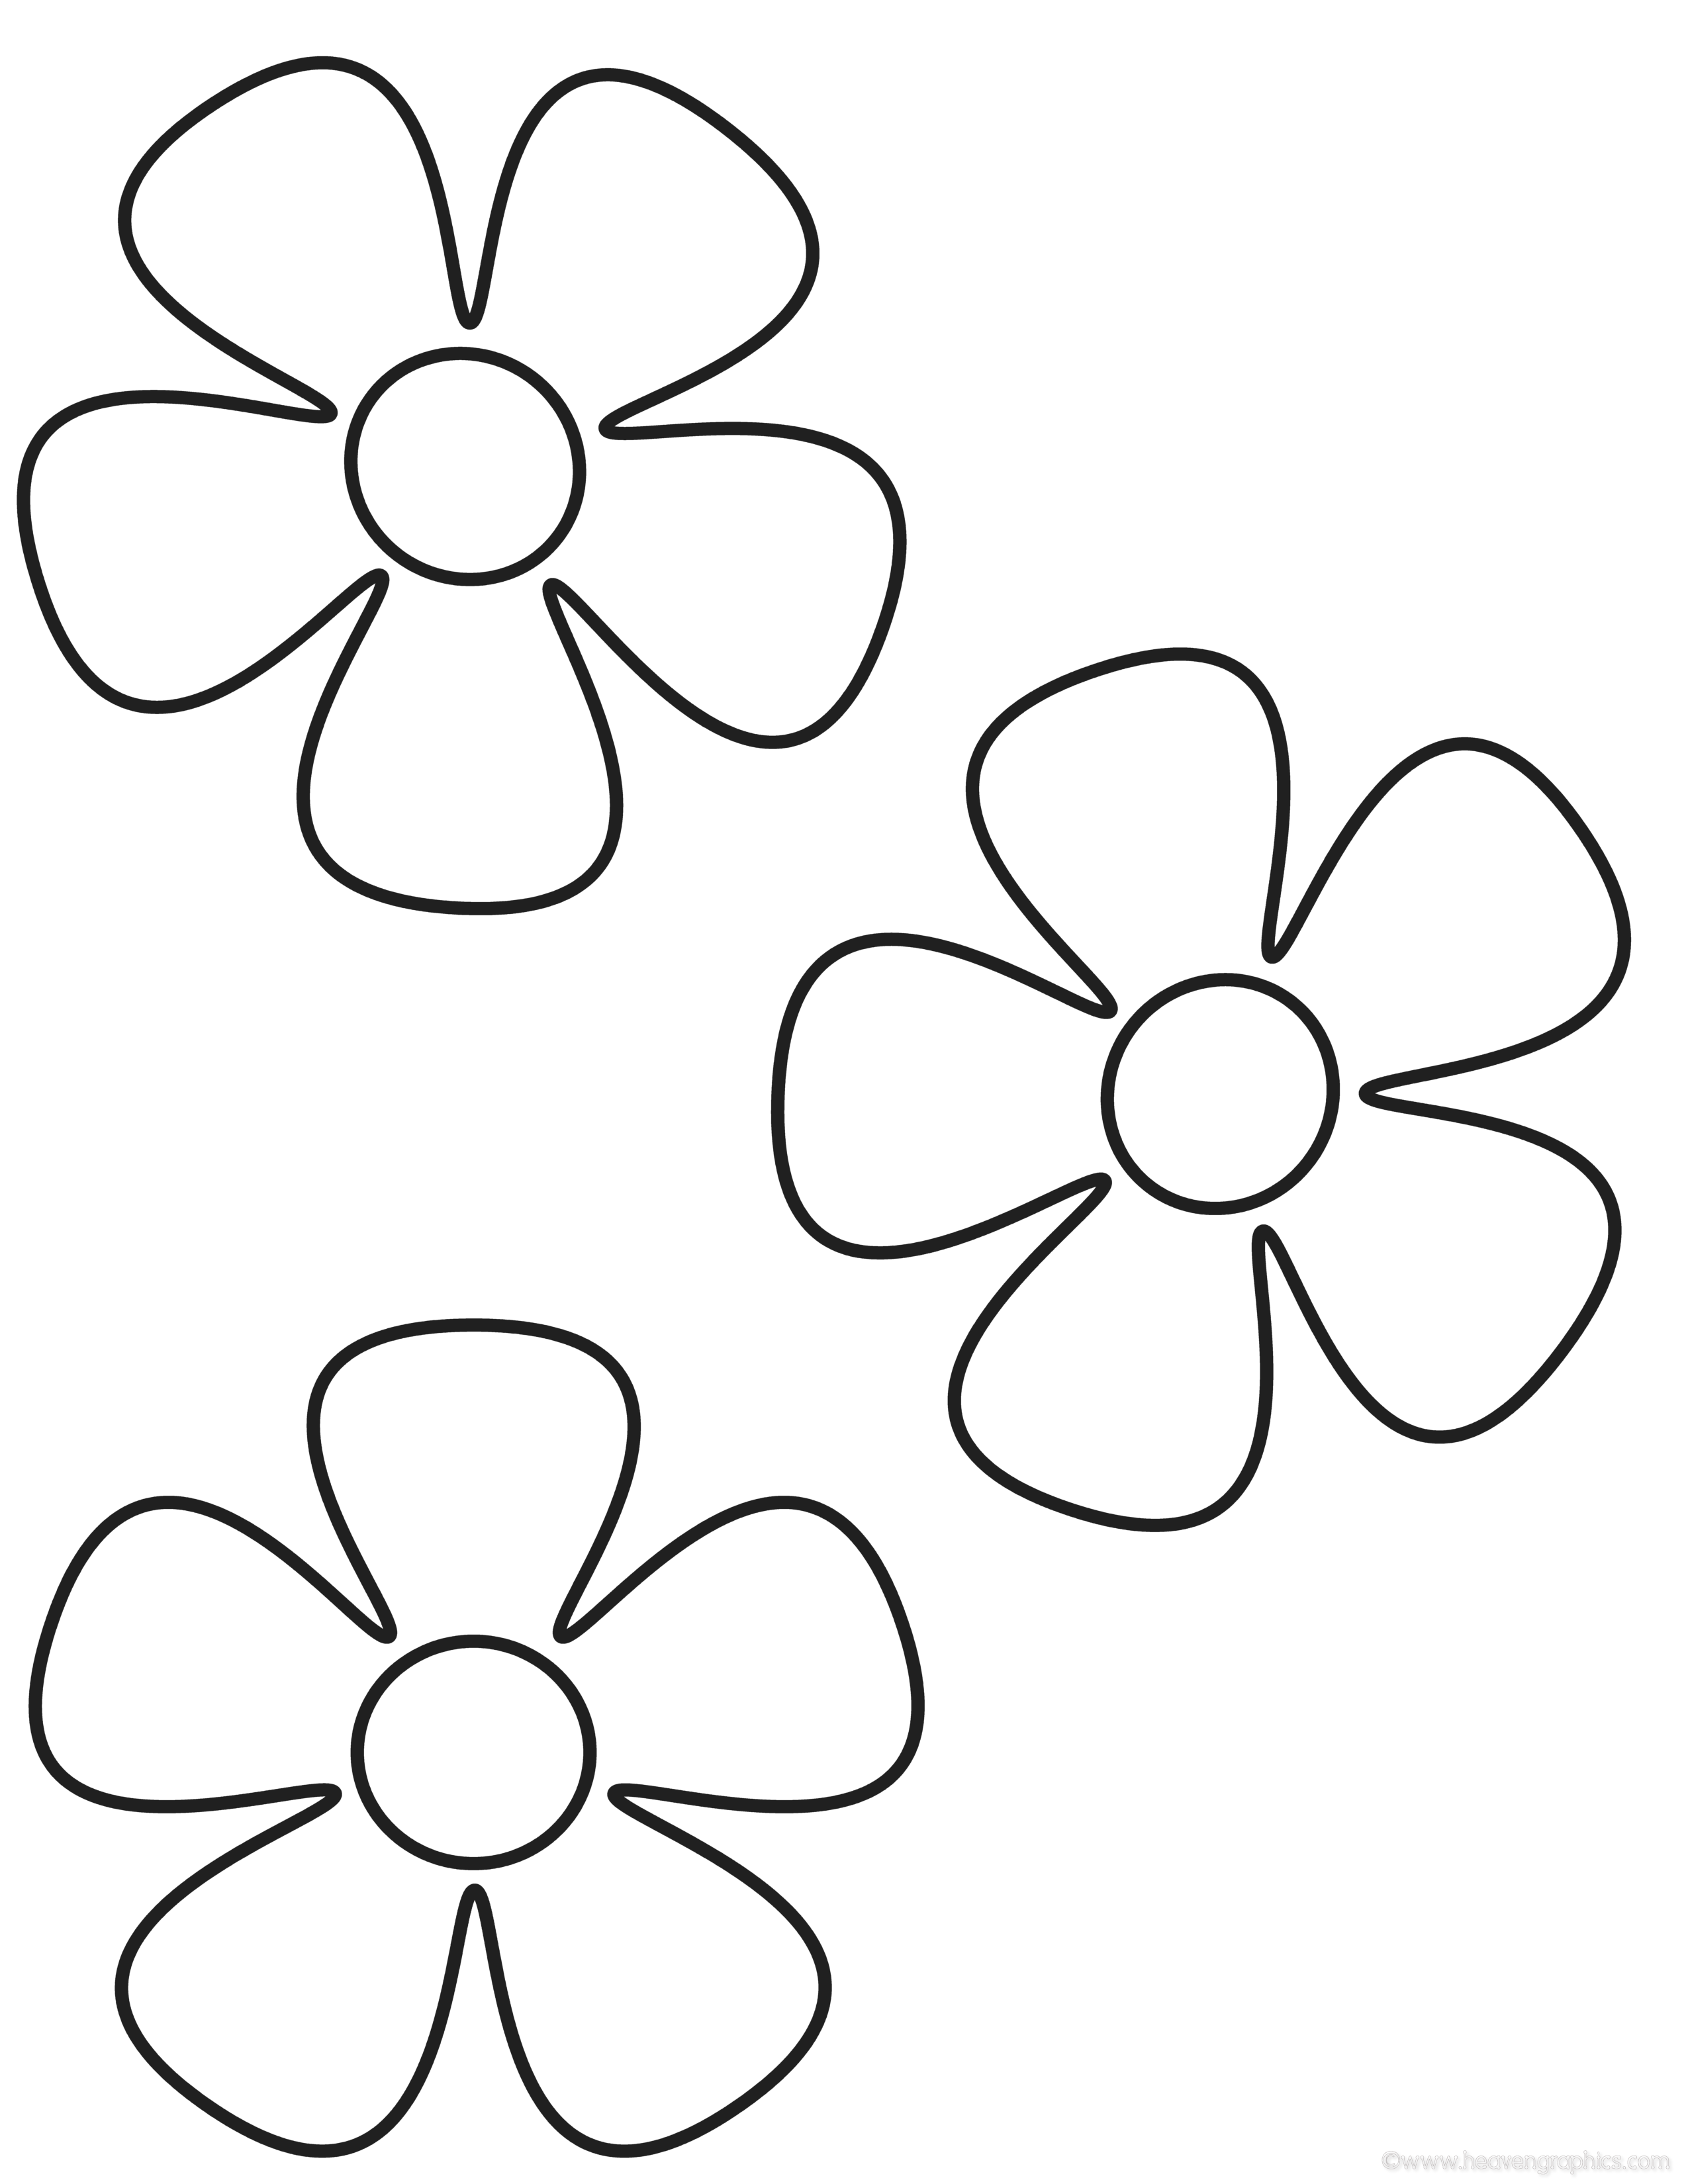 Colouring pictures for children for Flower coloring pages for preschoolers